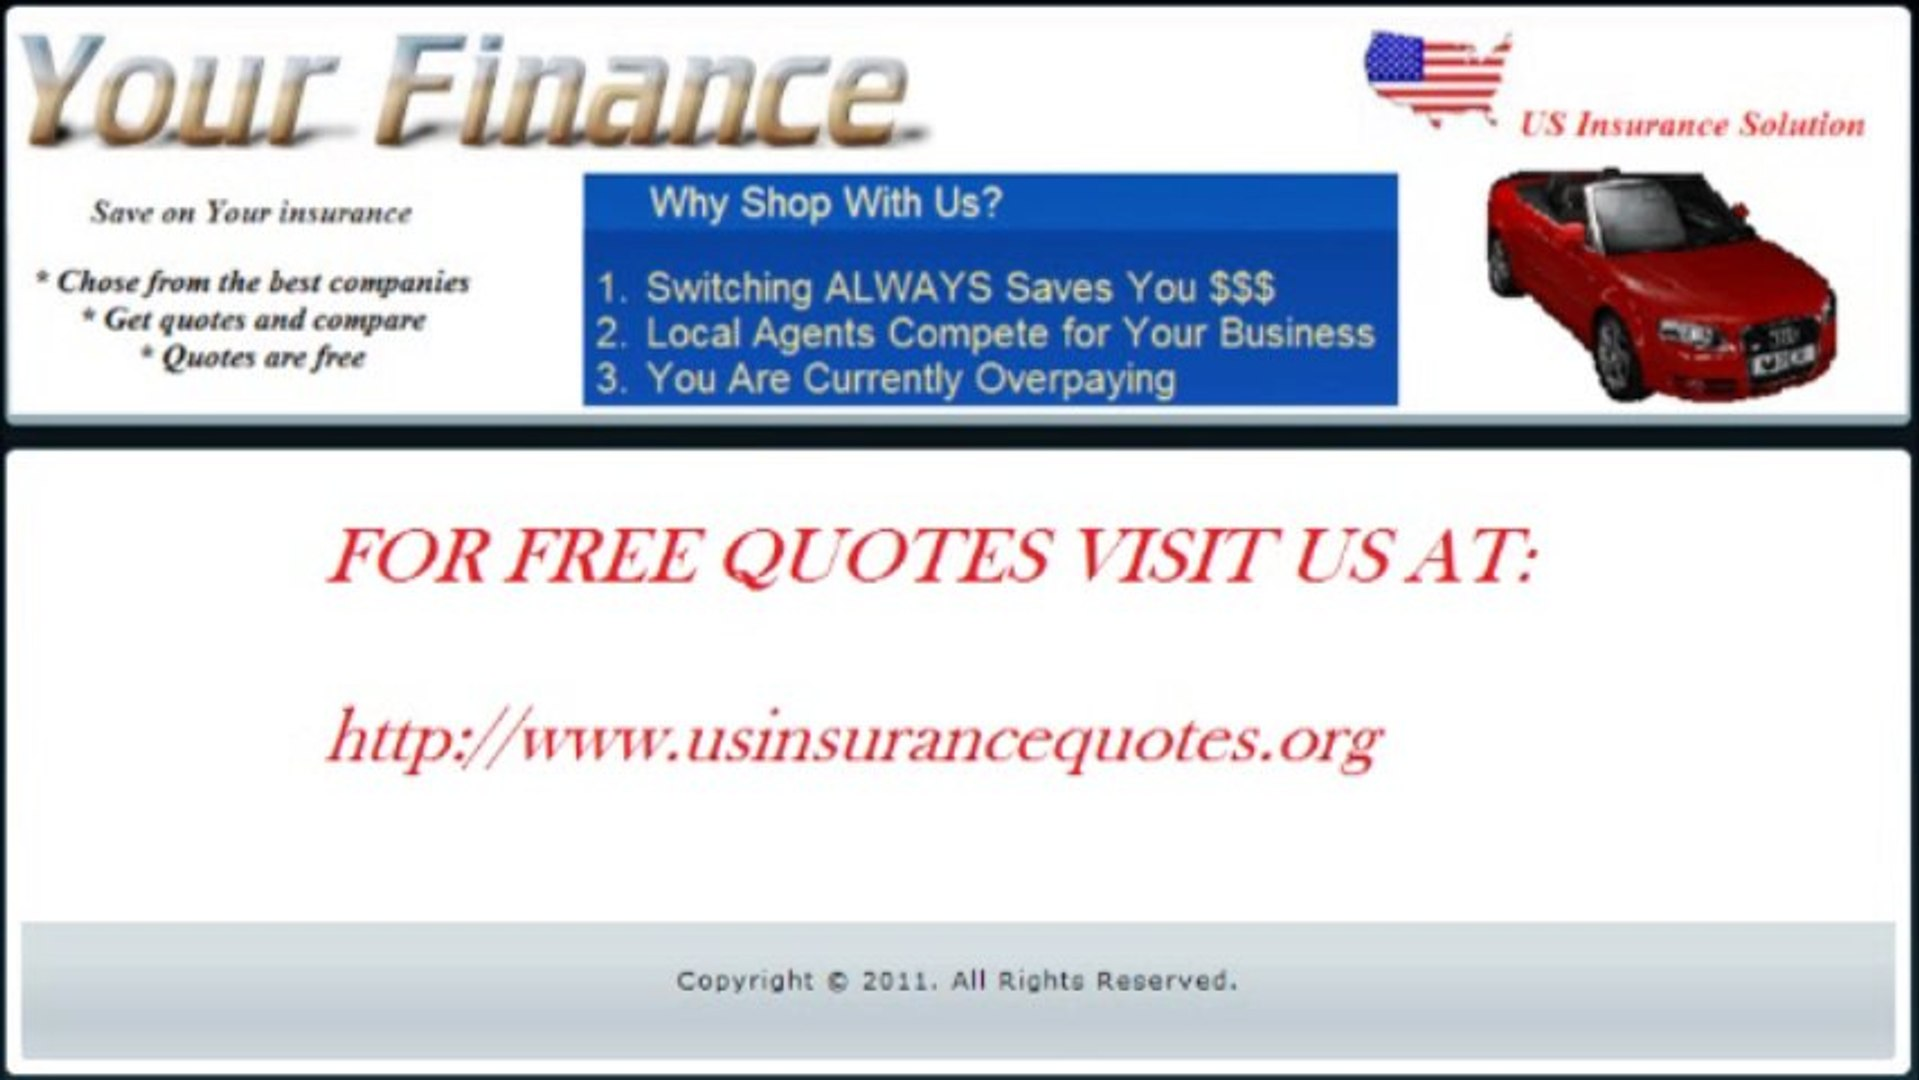 USINSURANCEQUOTES.ORG - Are there any major US life insurance companies that sell policies to US cit